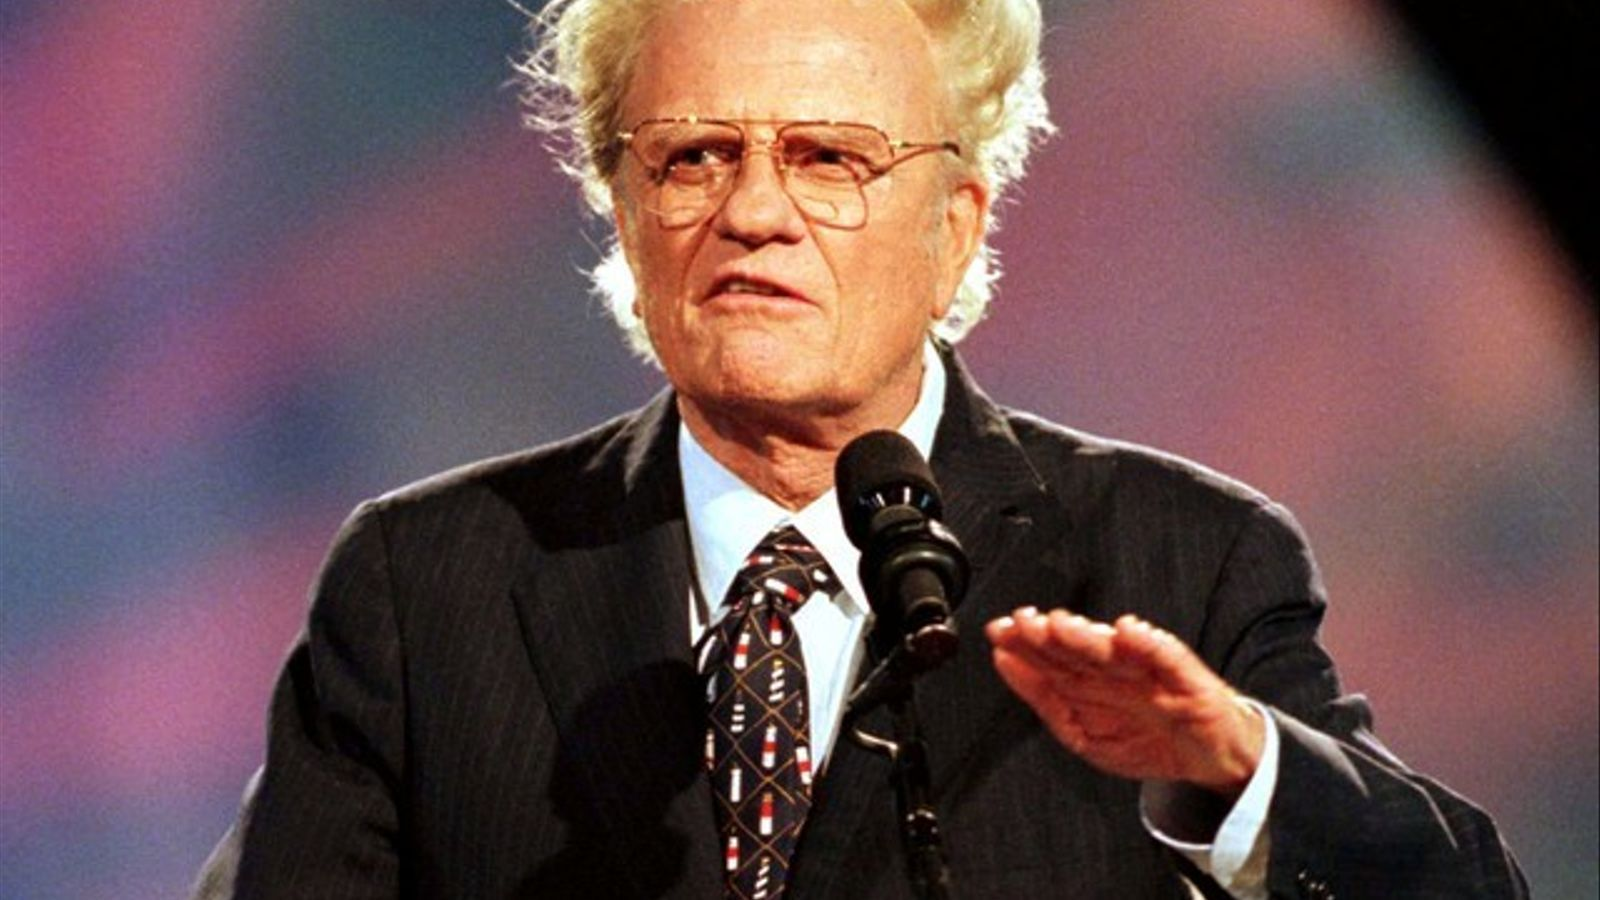 Mor l'influent televangelista dels EUA Billy Graham